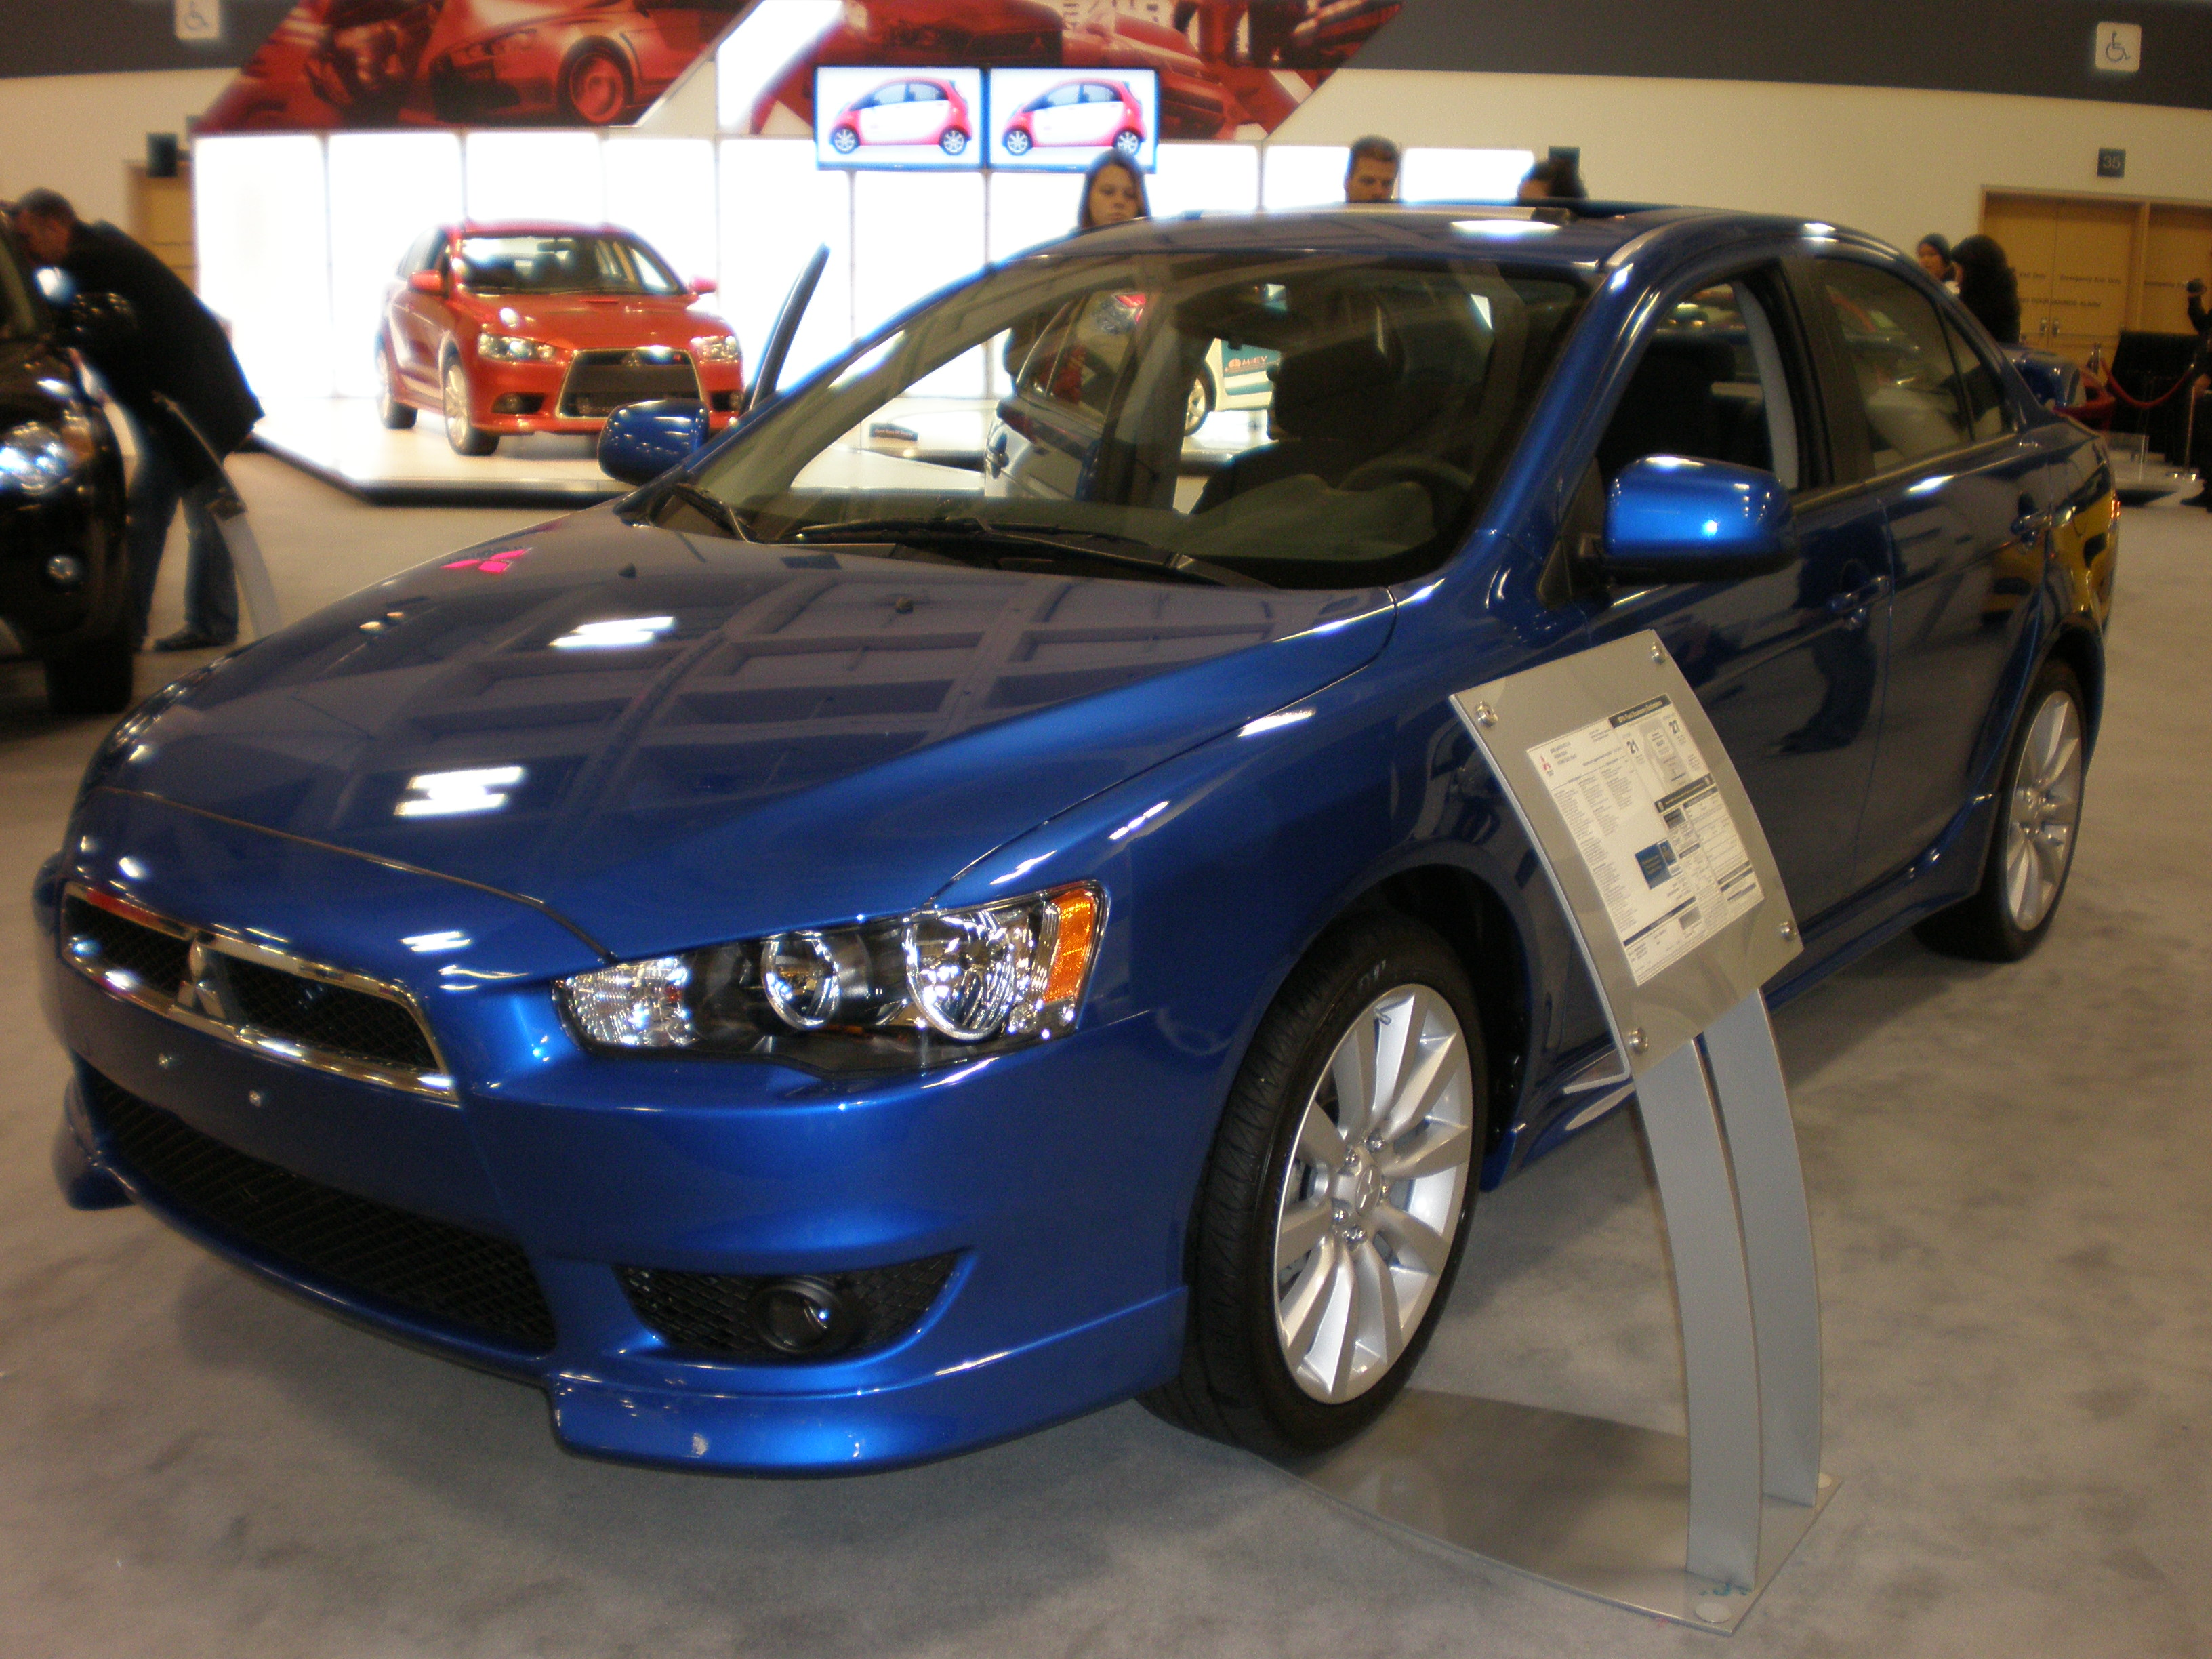 File:2009 blue Mitsubishi Lancer GTS 2.4L front side.JPG - Wikimedia Commons